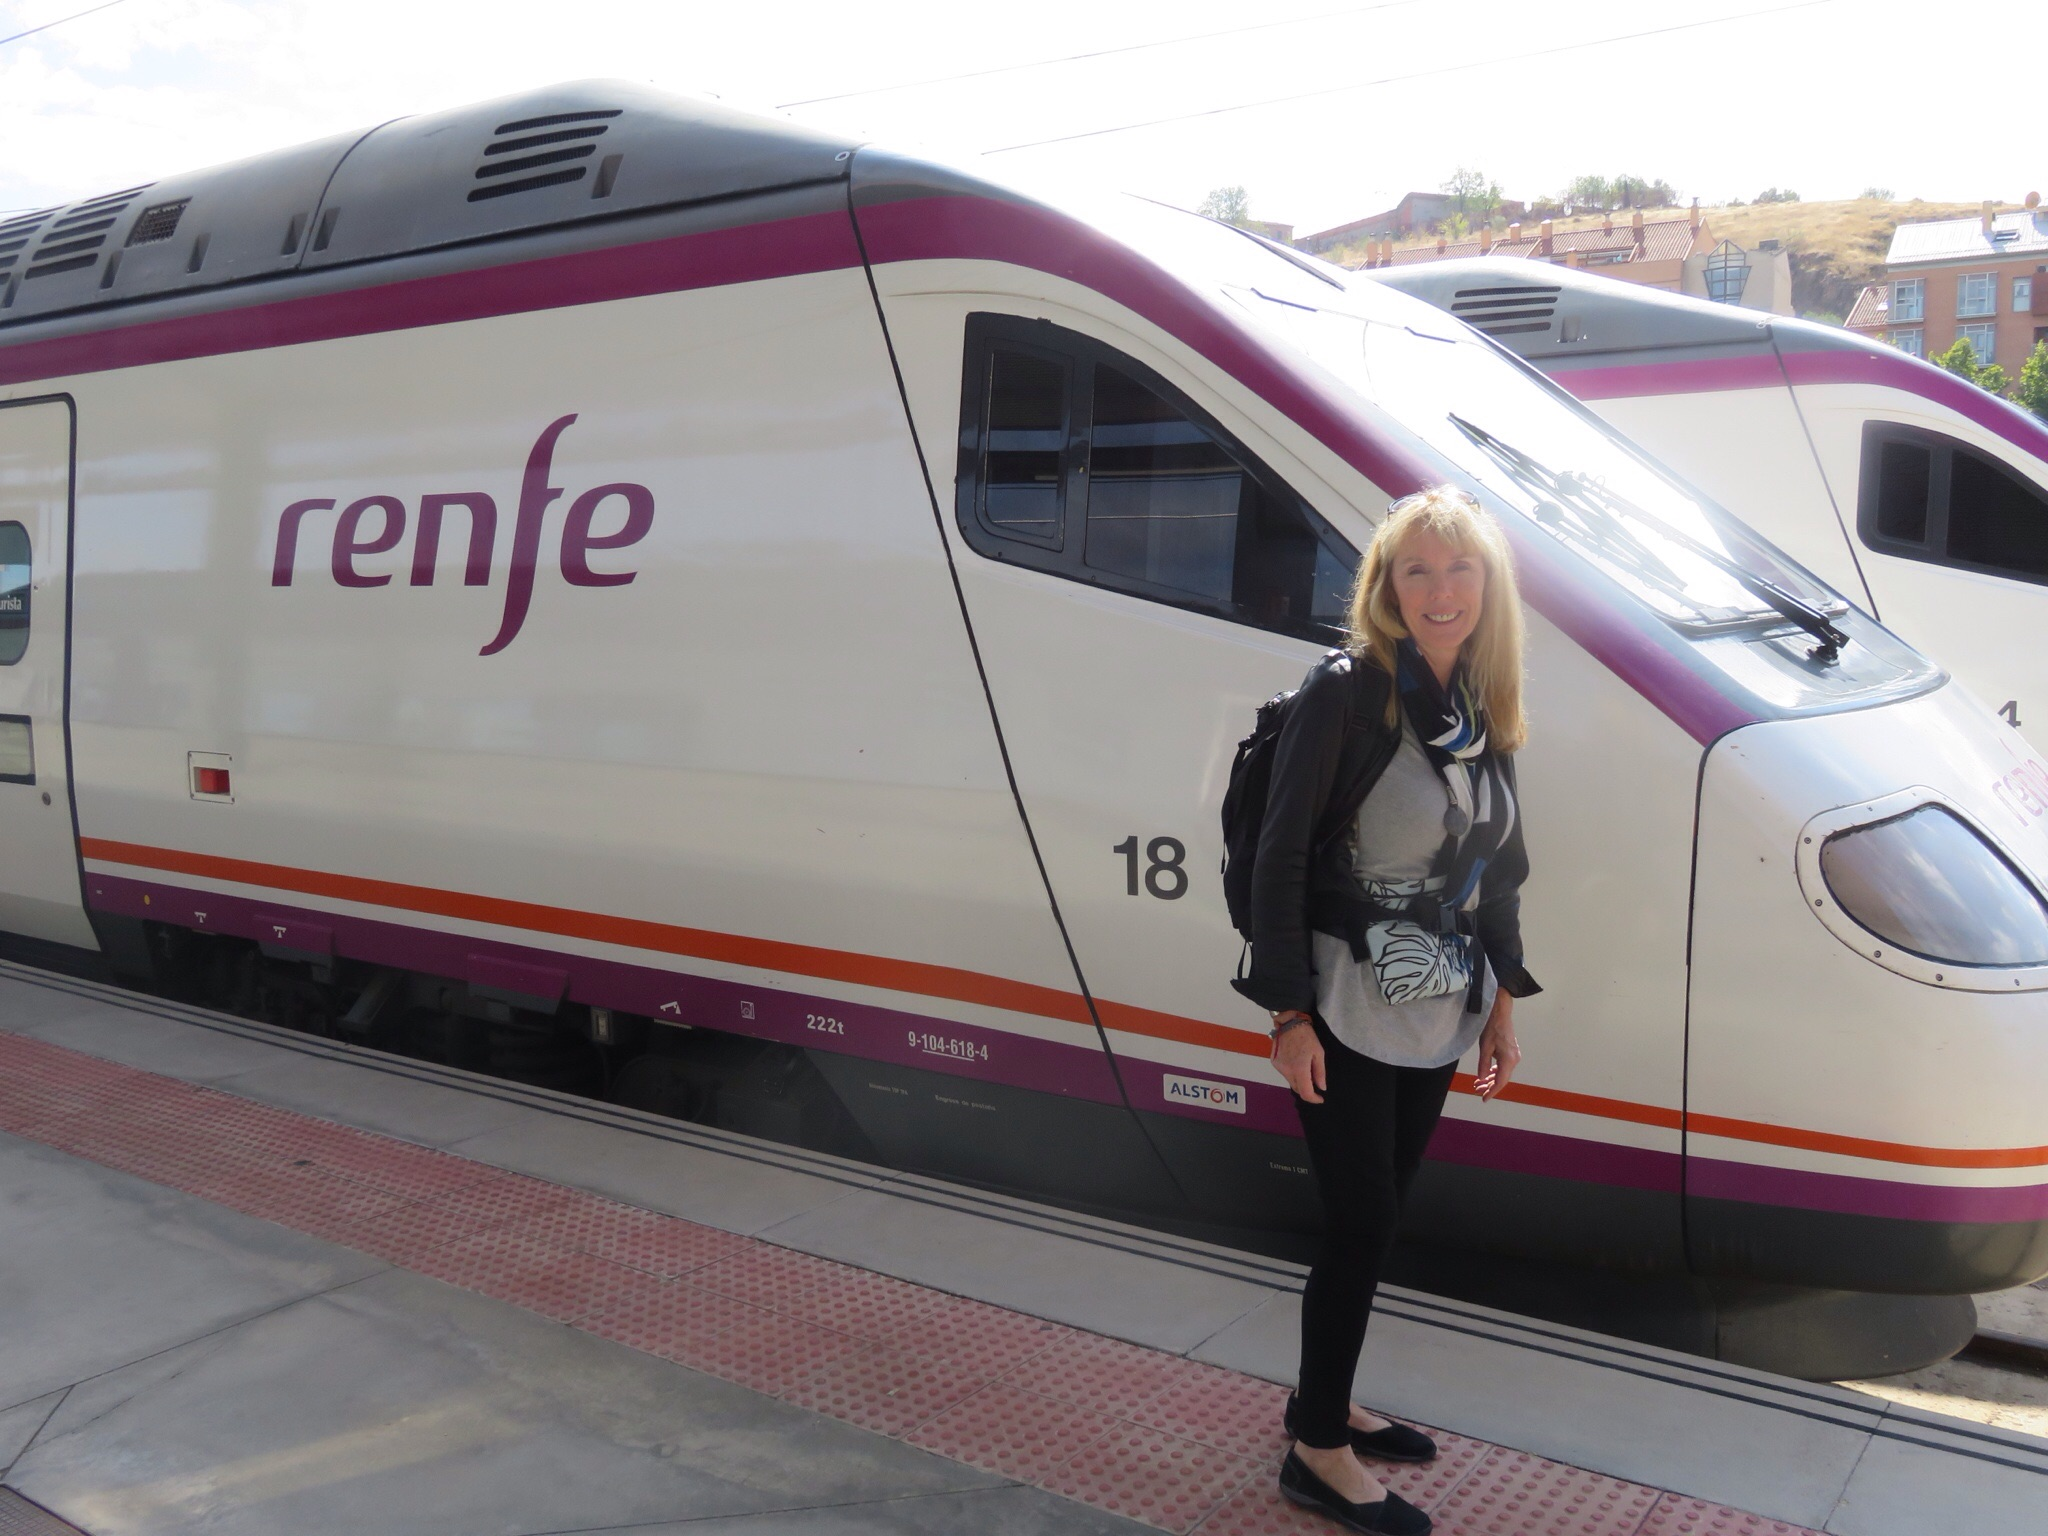 High speed train, runs up to 300 kilometers per hour! (Also has better seats than any airline)